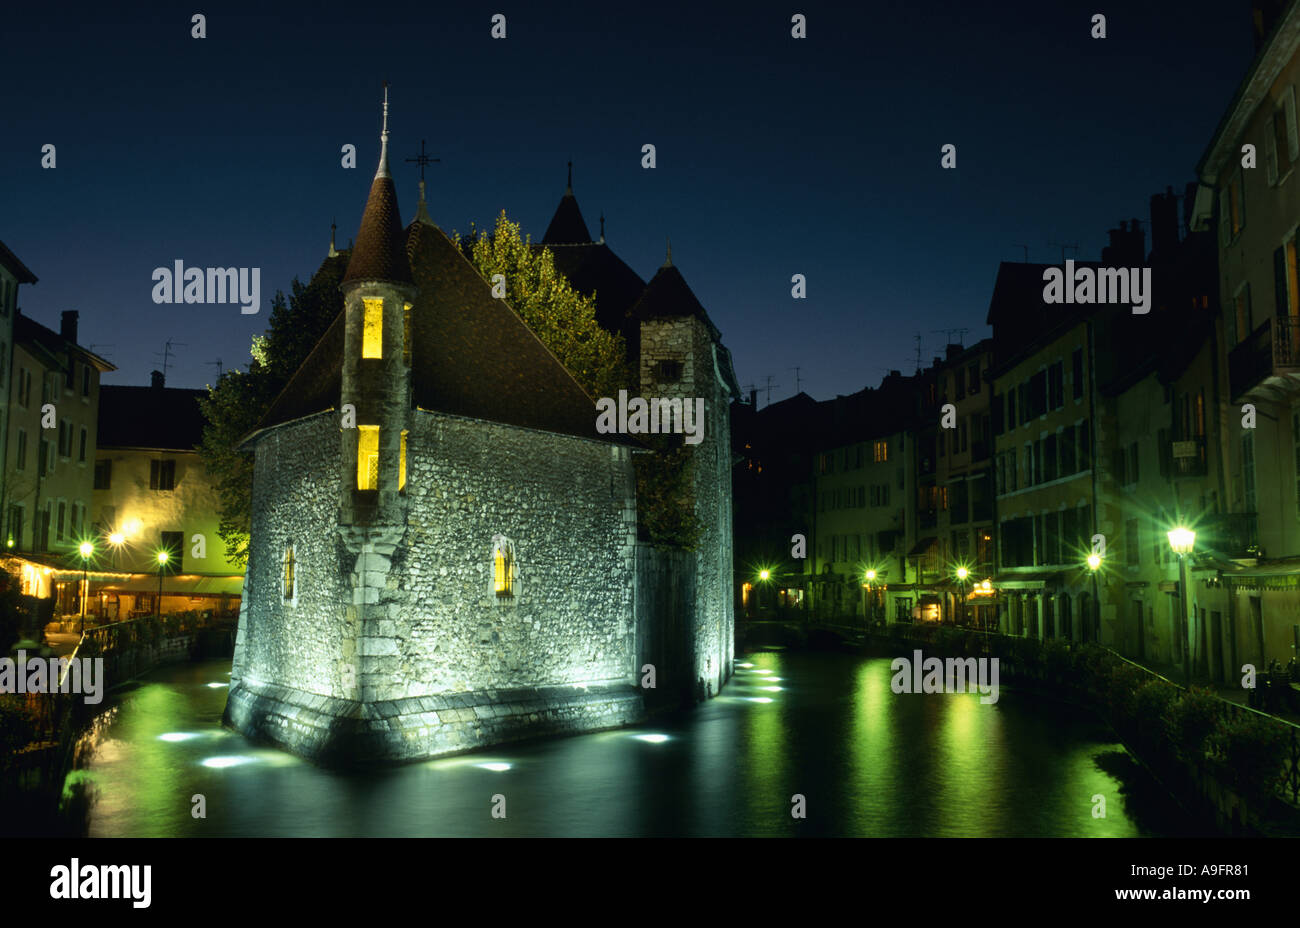 picturesque old town of Annecy, Palais d' Isle illuminated at night, France, Rhne-Alpes, Annecey. - Stock Image